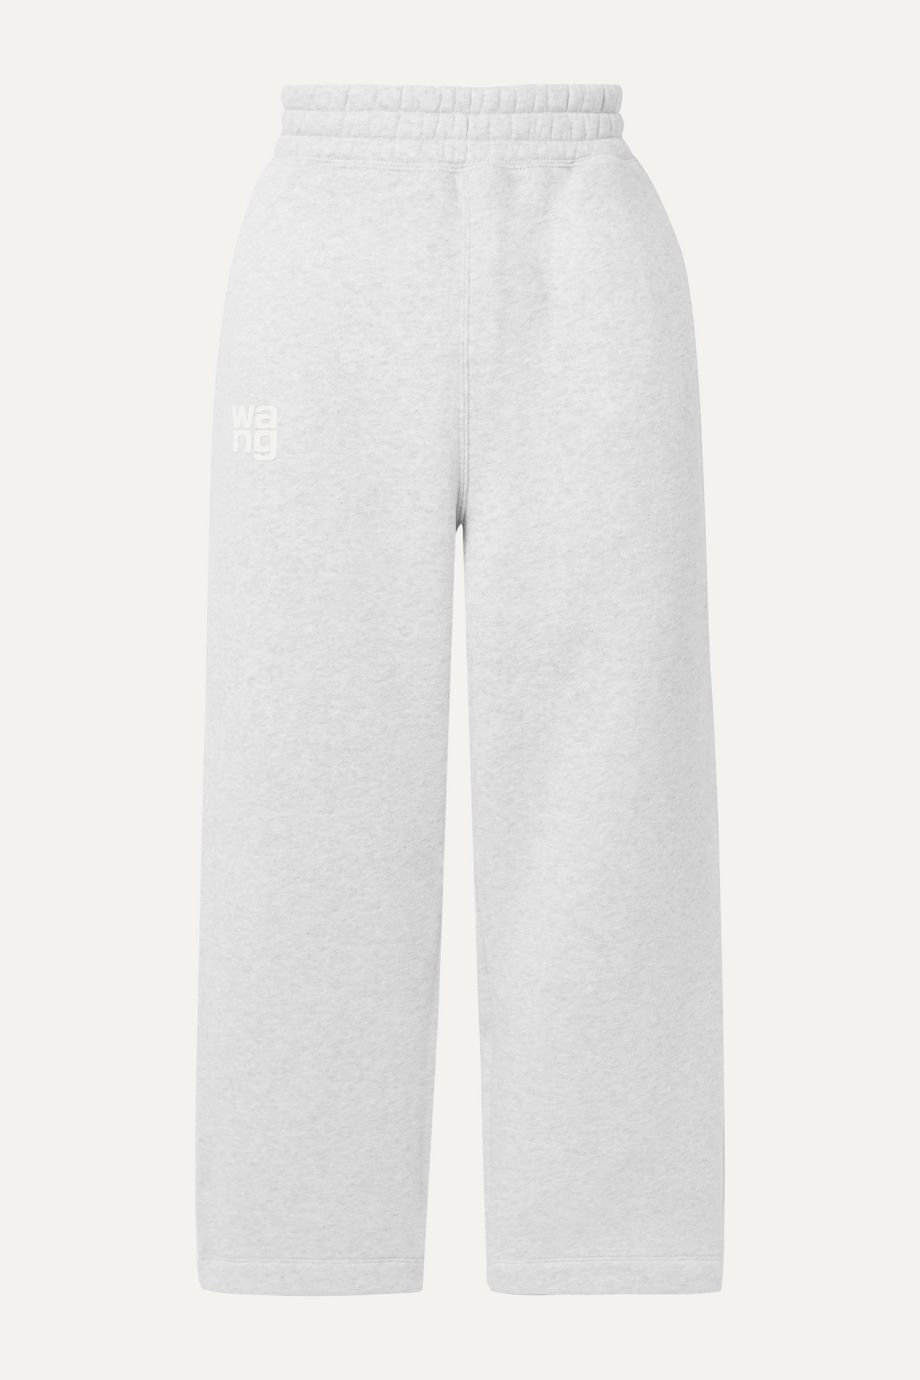 alexanderwang.t Printed cotton-blend jersey track pants